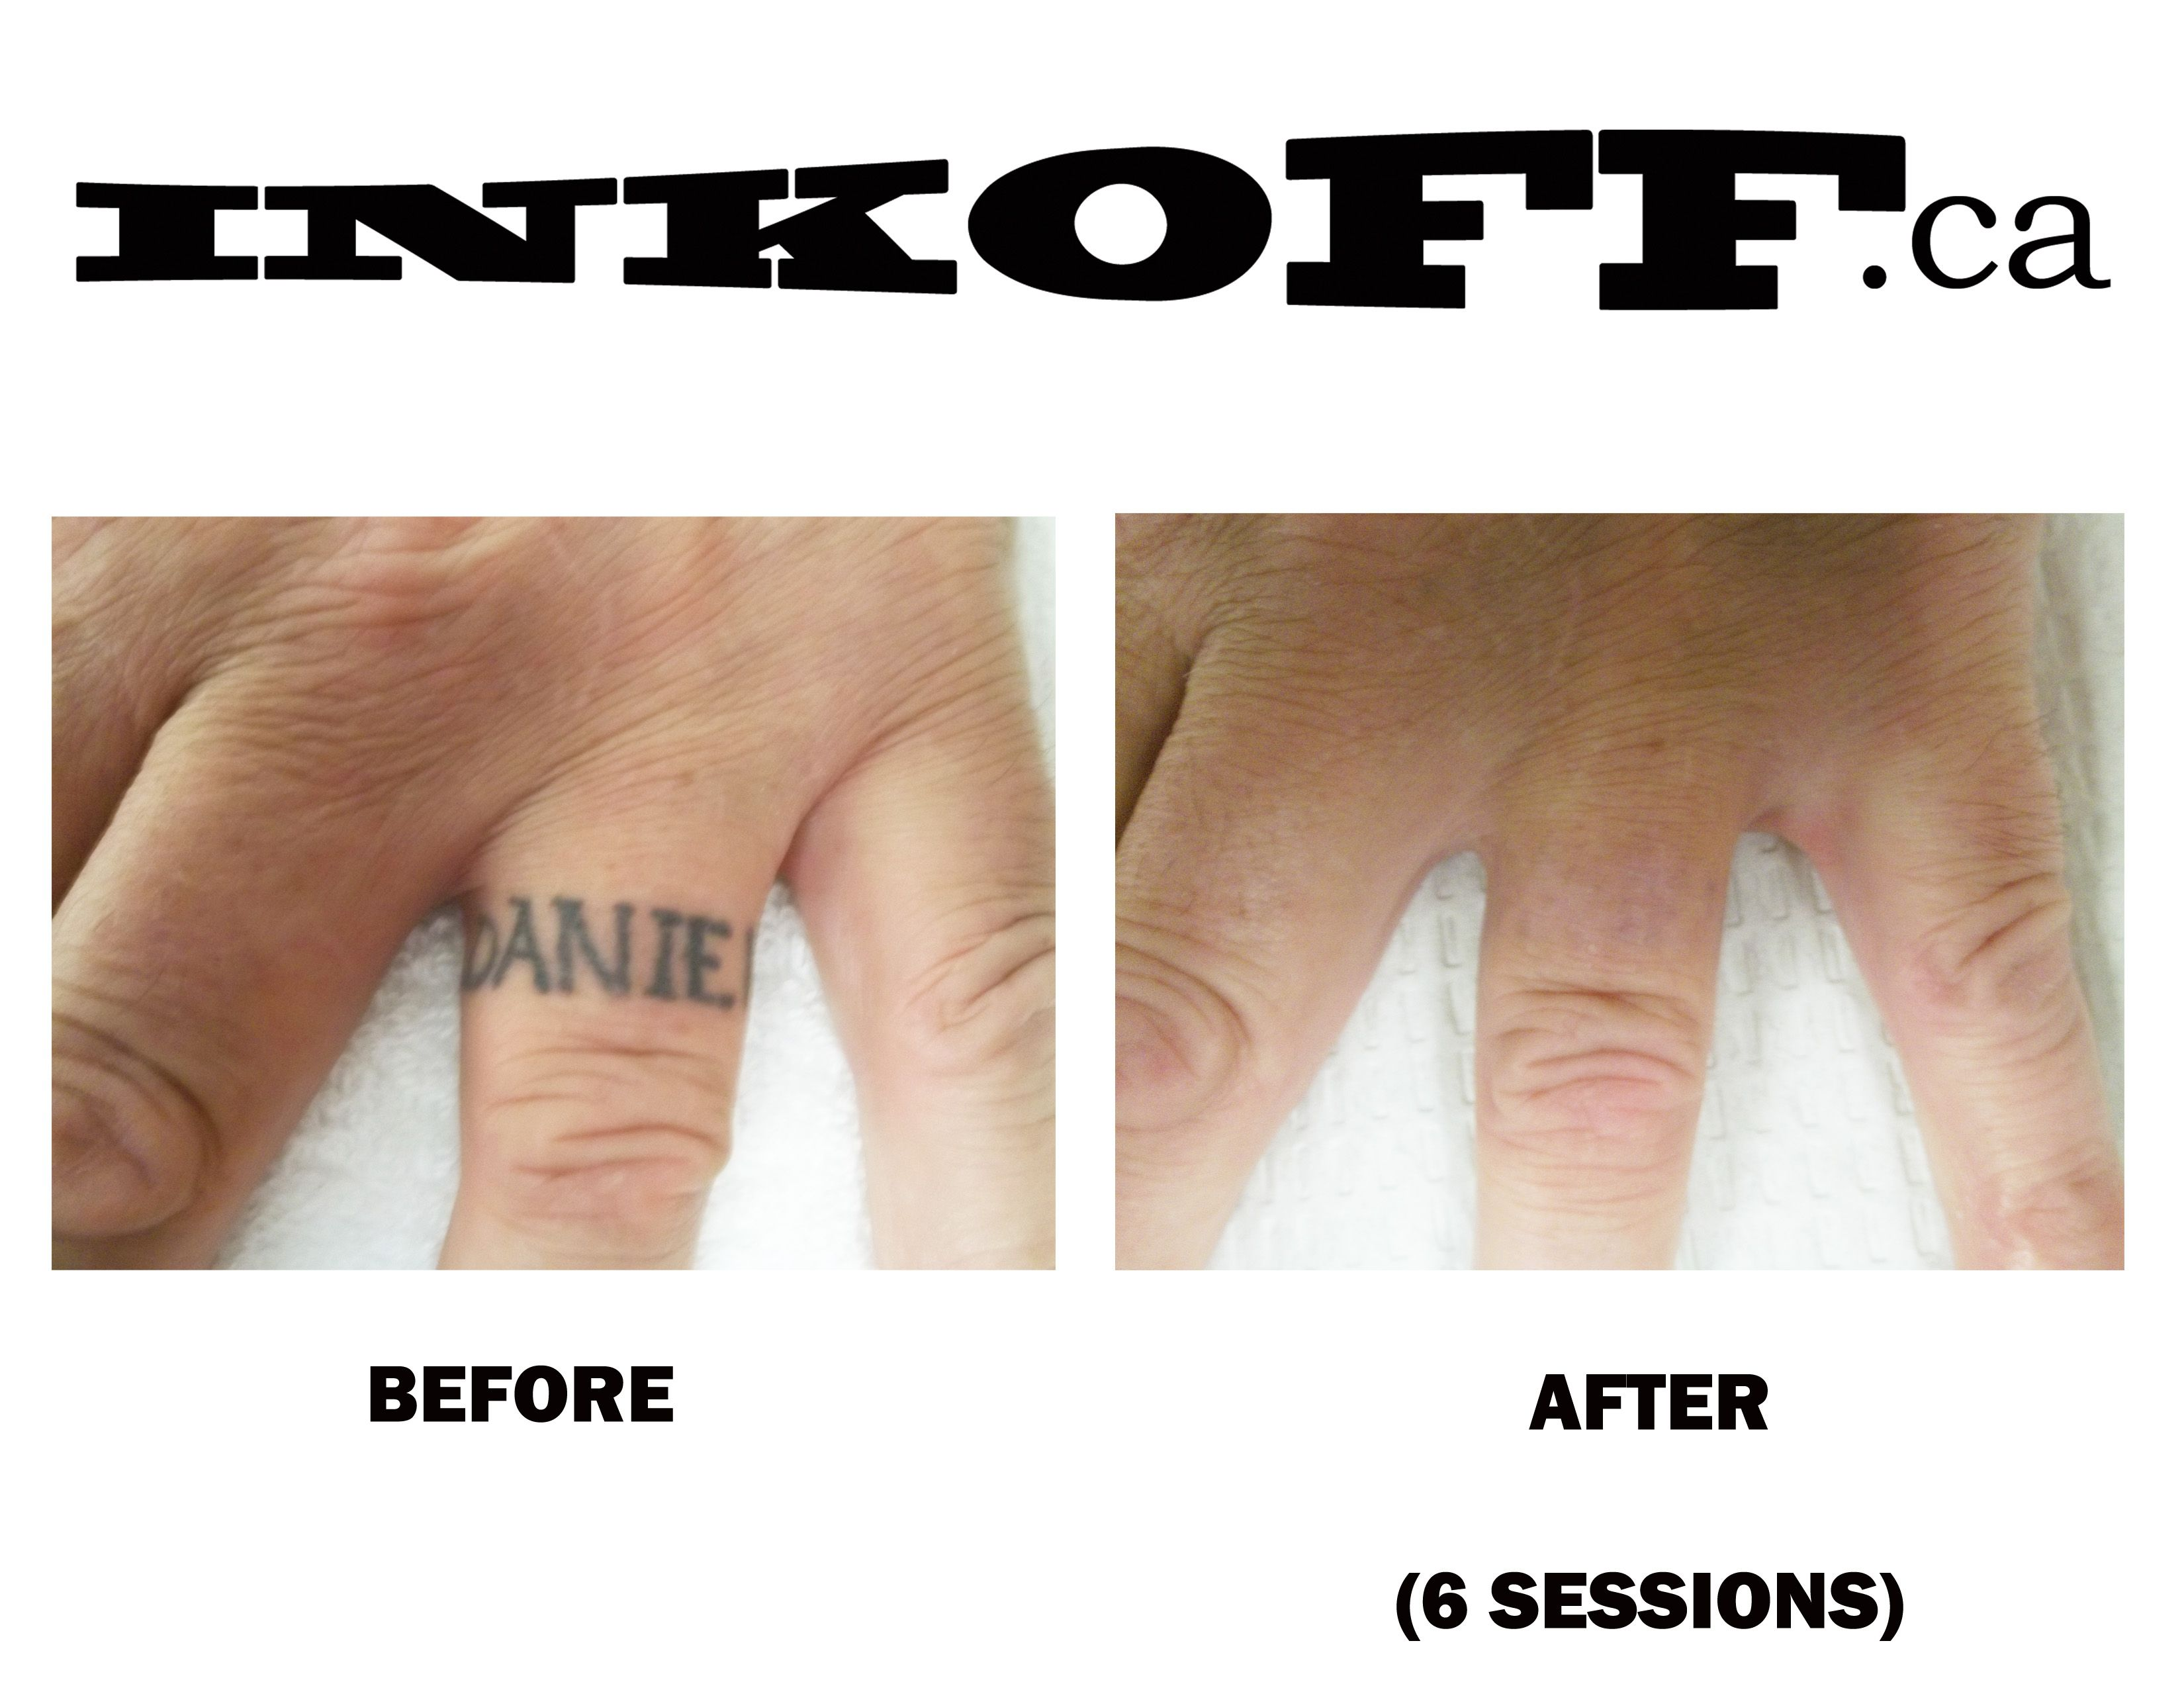 Black Finger Tattoo Removal Before After 6 Sessions Laser Tattoo Tattoo Removal Laser Tattoo Removal